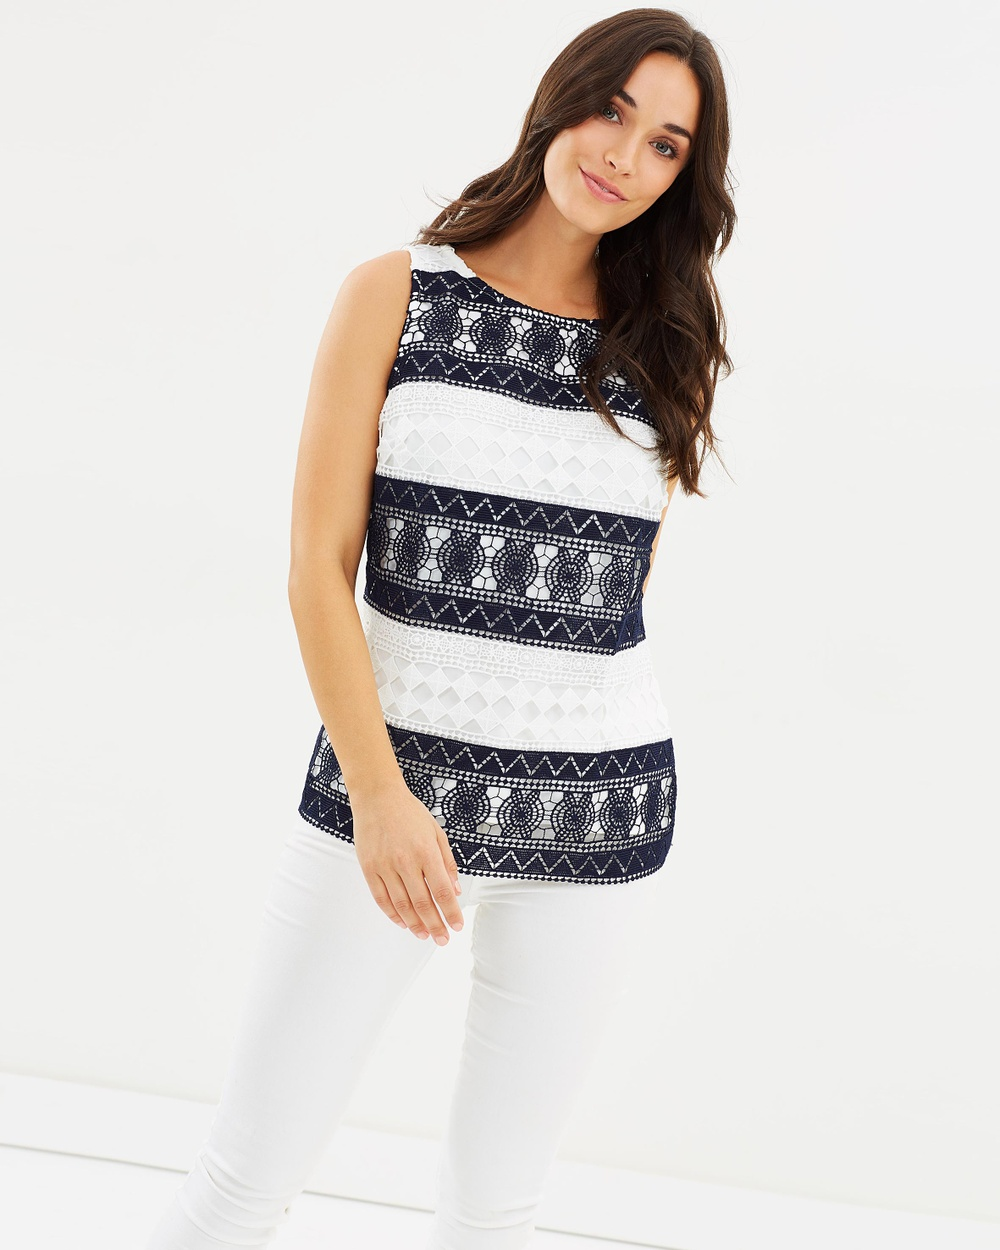 Oasis Marais Stripe Lace Shell Top Tops Navy & Ivory Marais Stripe Lace Shell Top